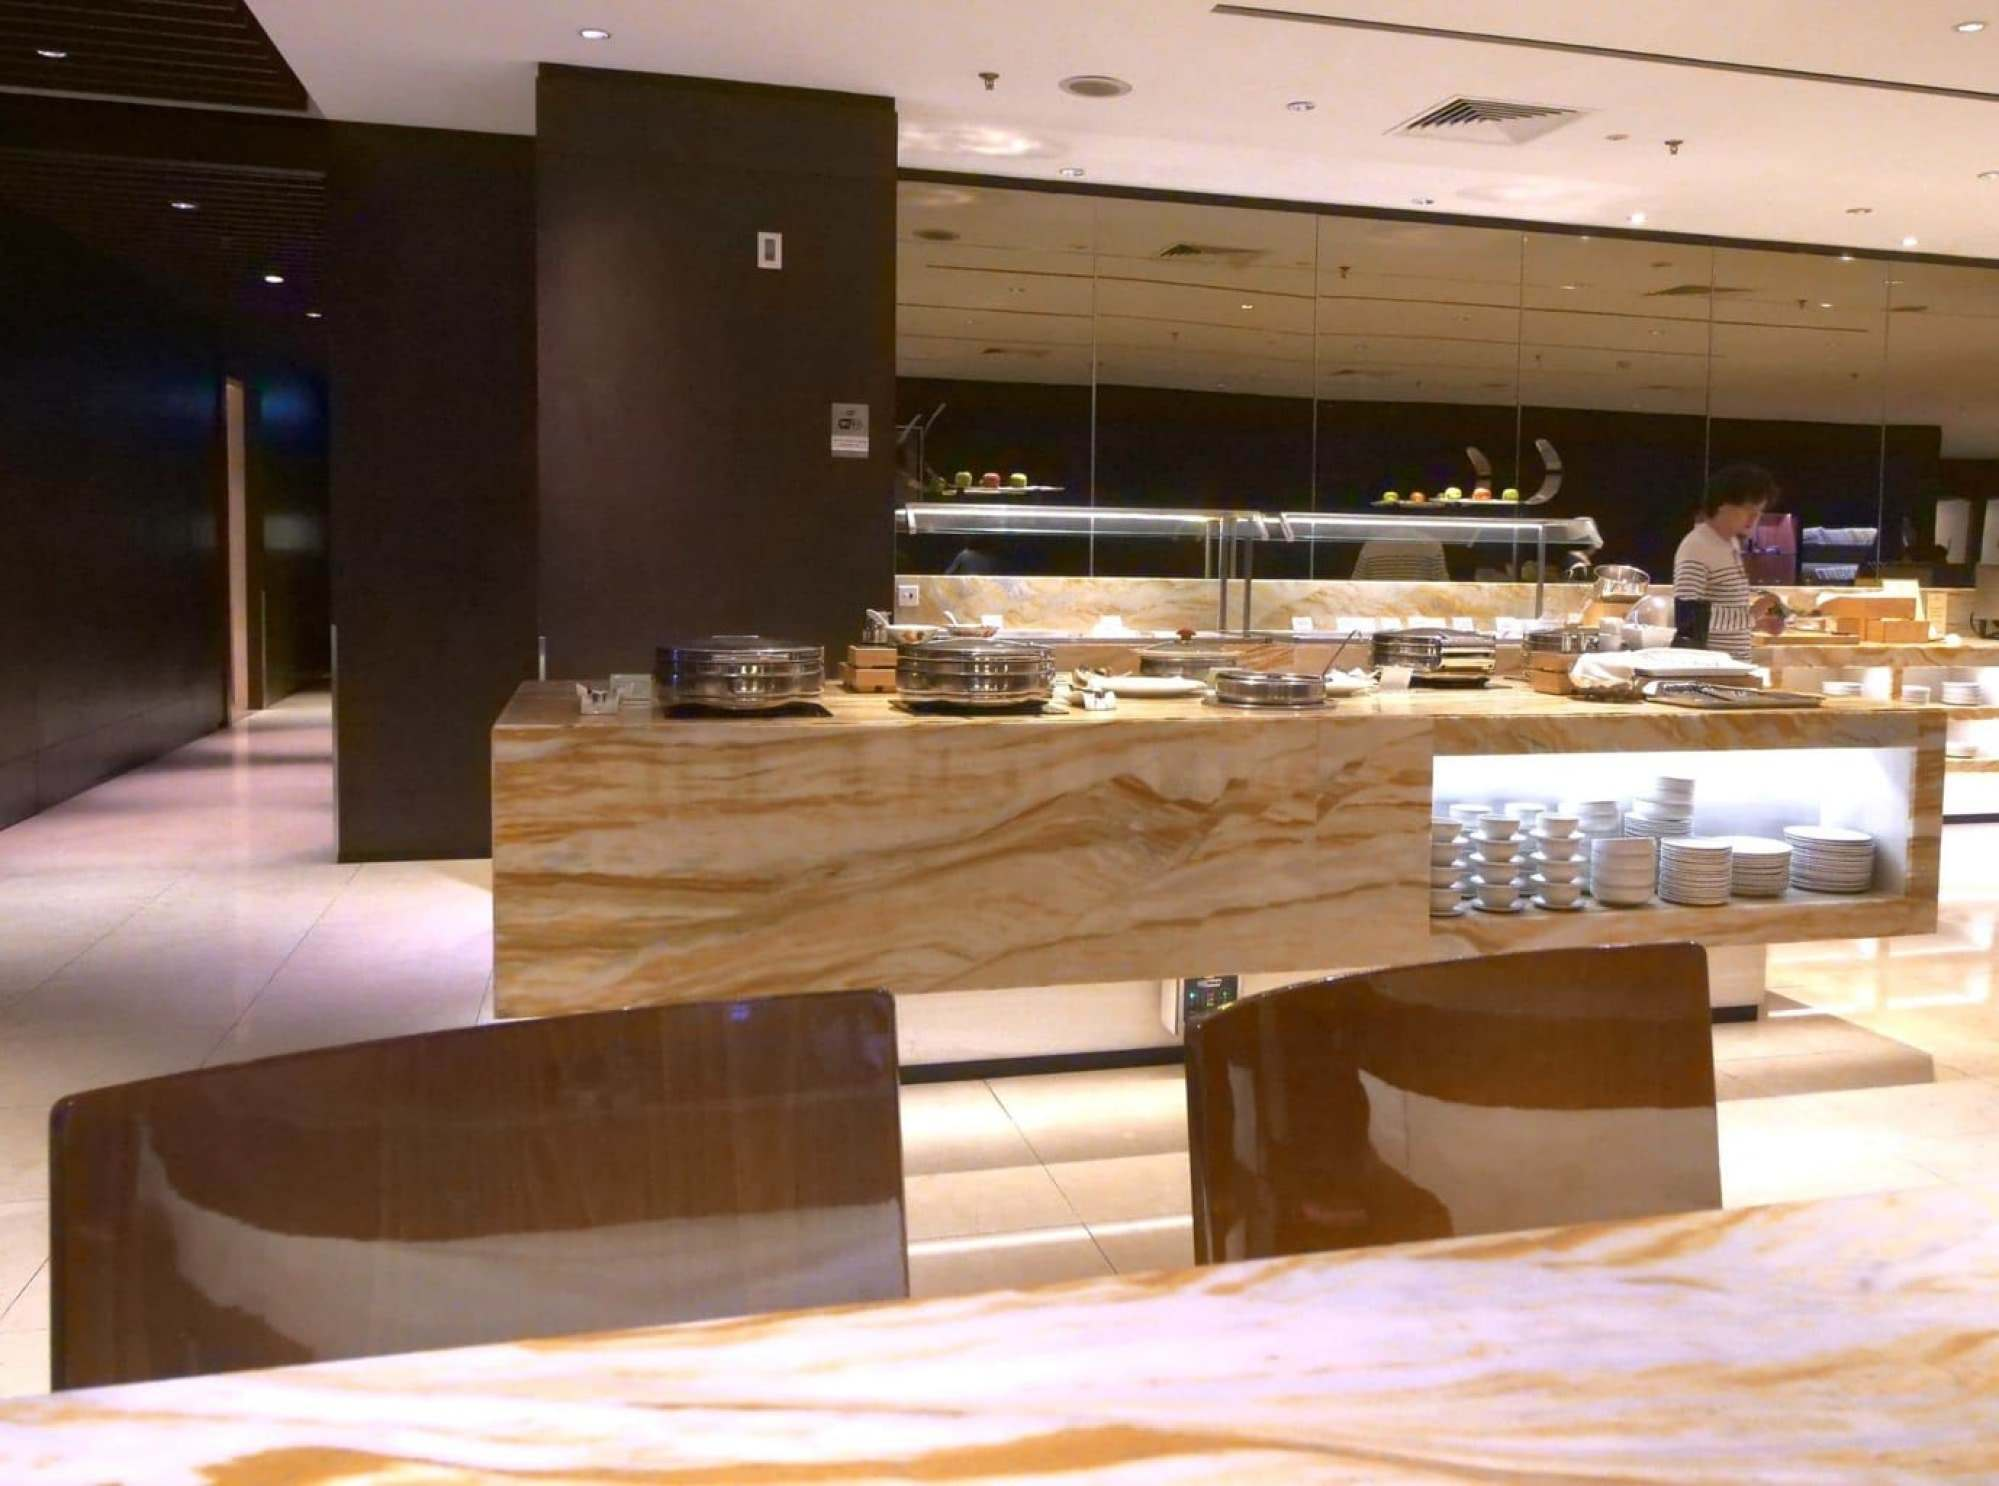 Singapore Airlines Business Class lounge at terminal 2